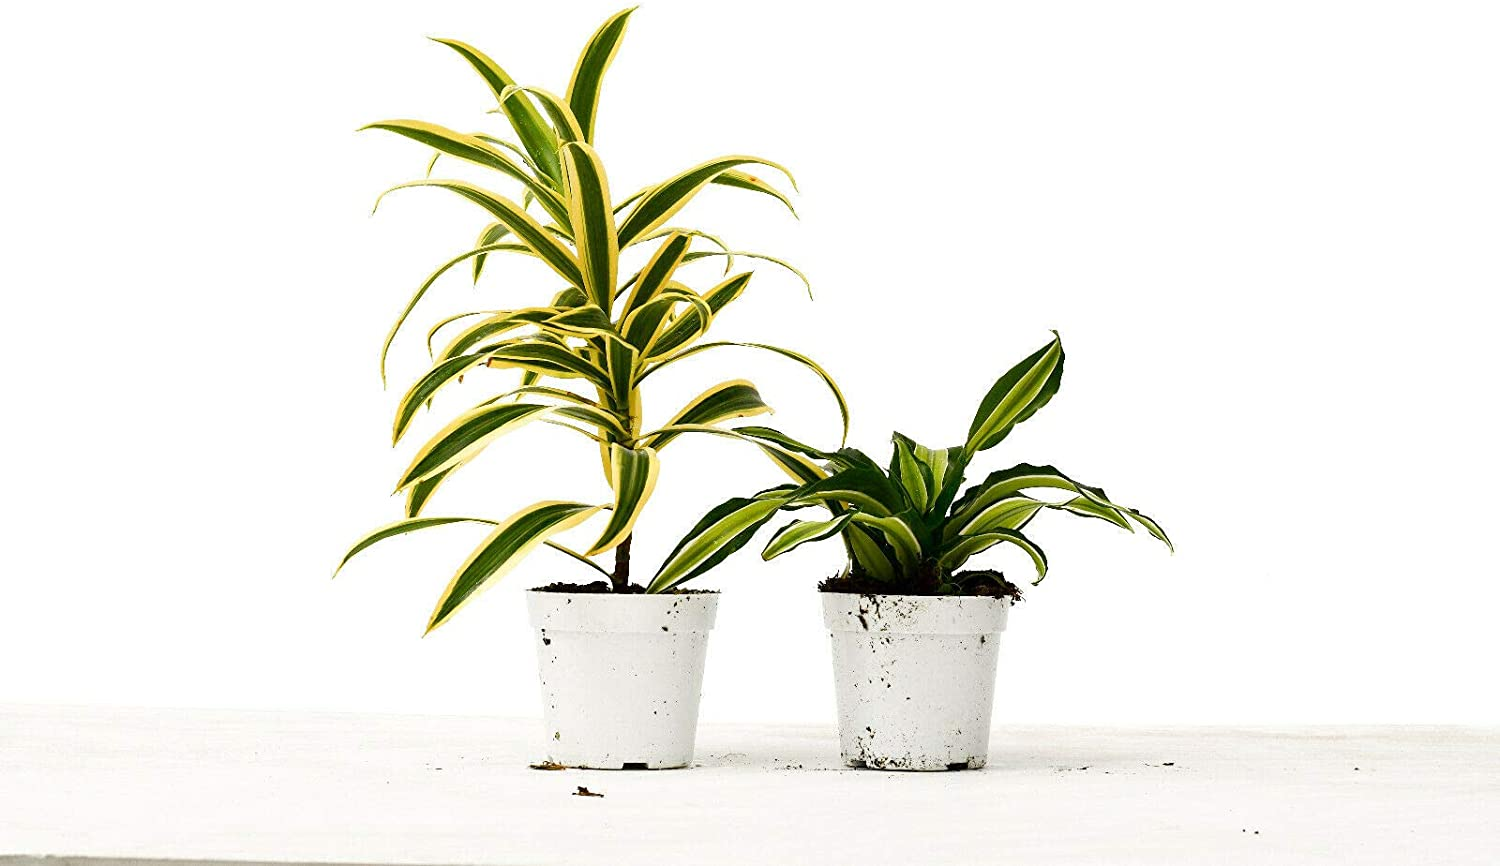 2 Different Dracaenas In stock Variety Pack - Iive Car Mesa Mall House Free pIant